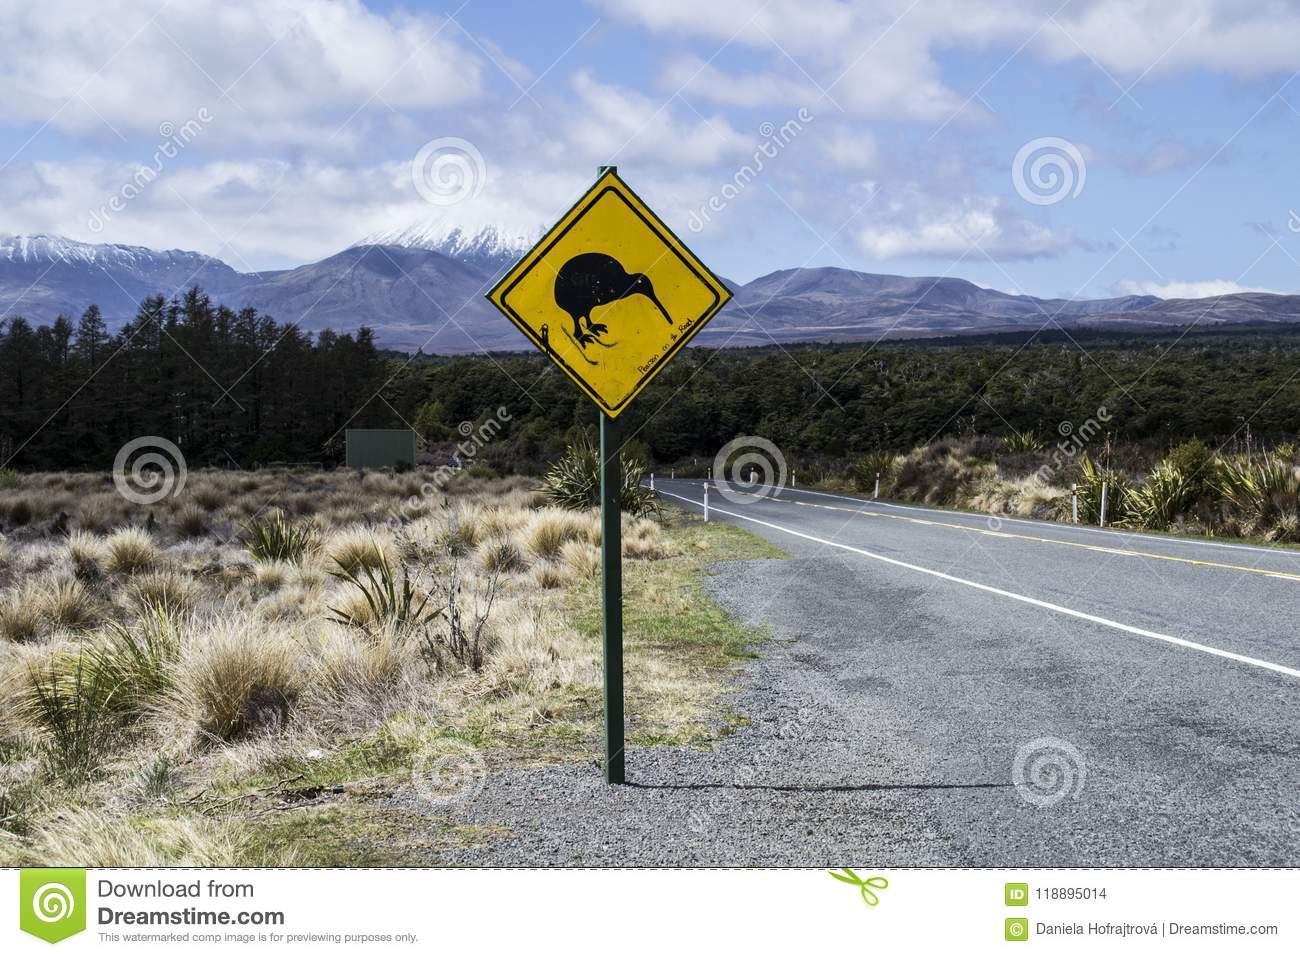 Yellow road sign with kiwi bird crossing by the road. Mountains in the background. Located in the Tongariro National Park, North